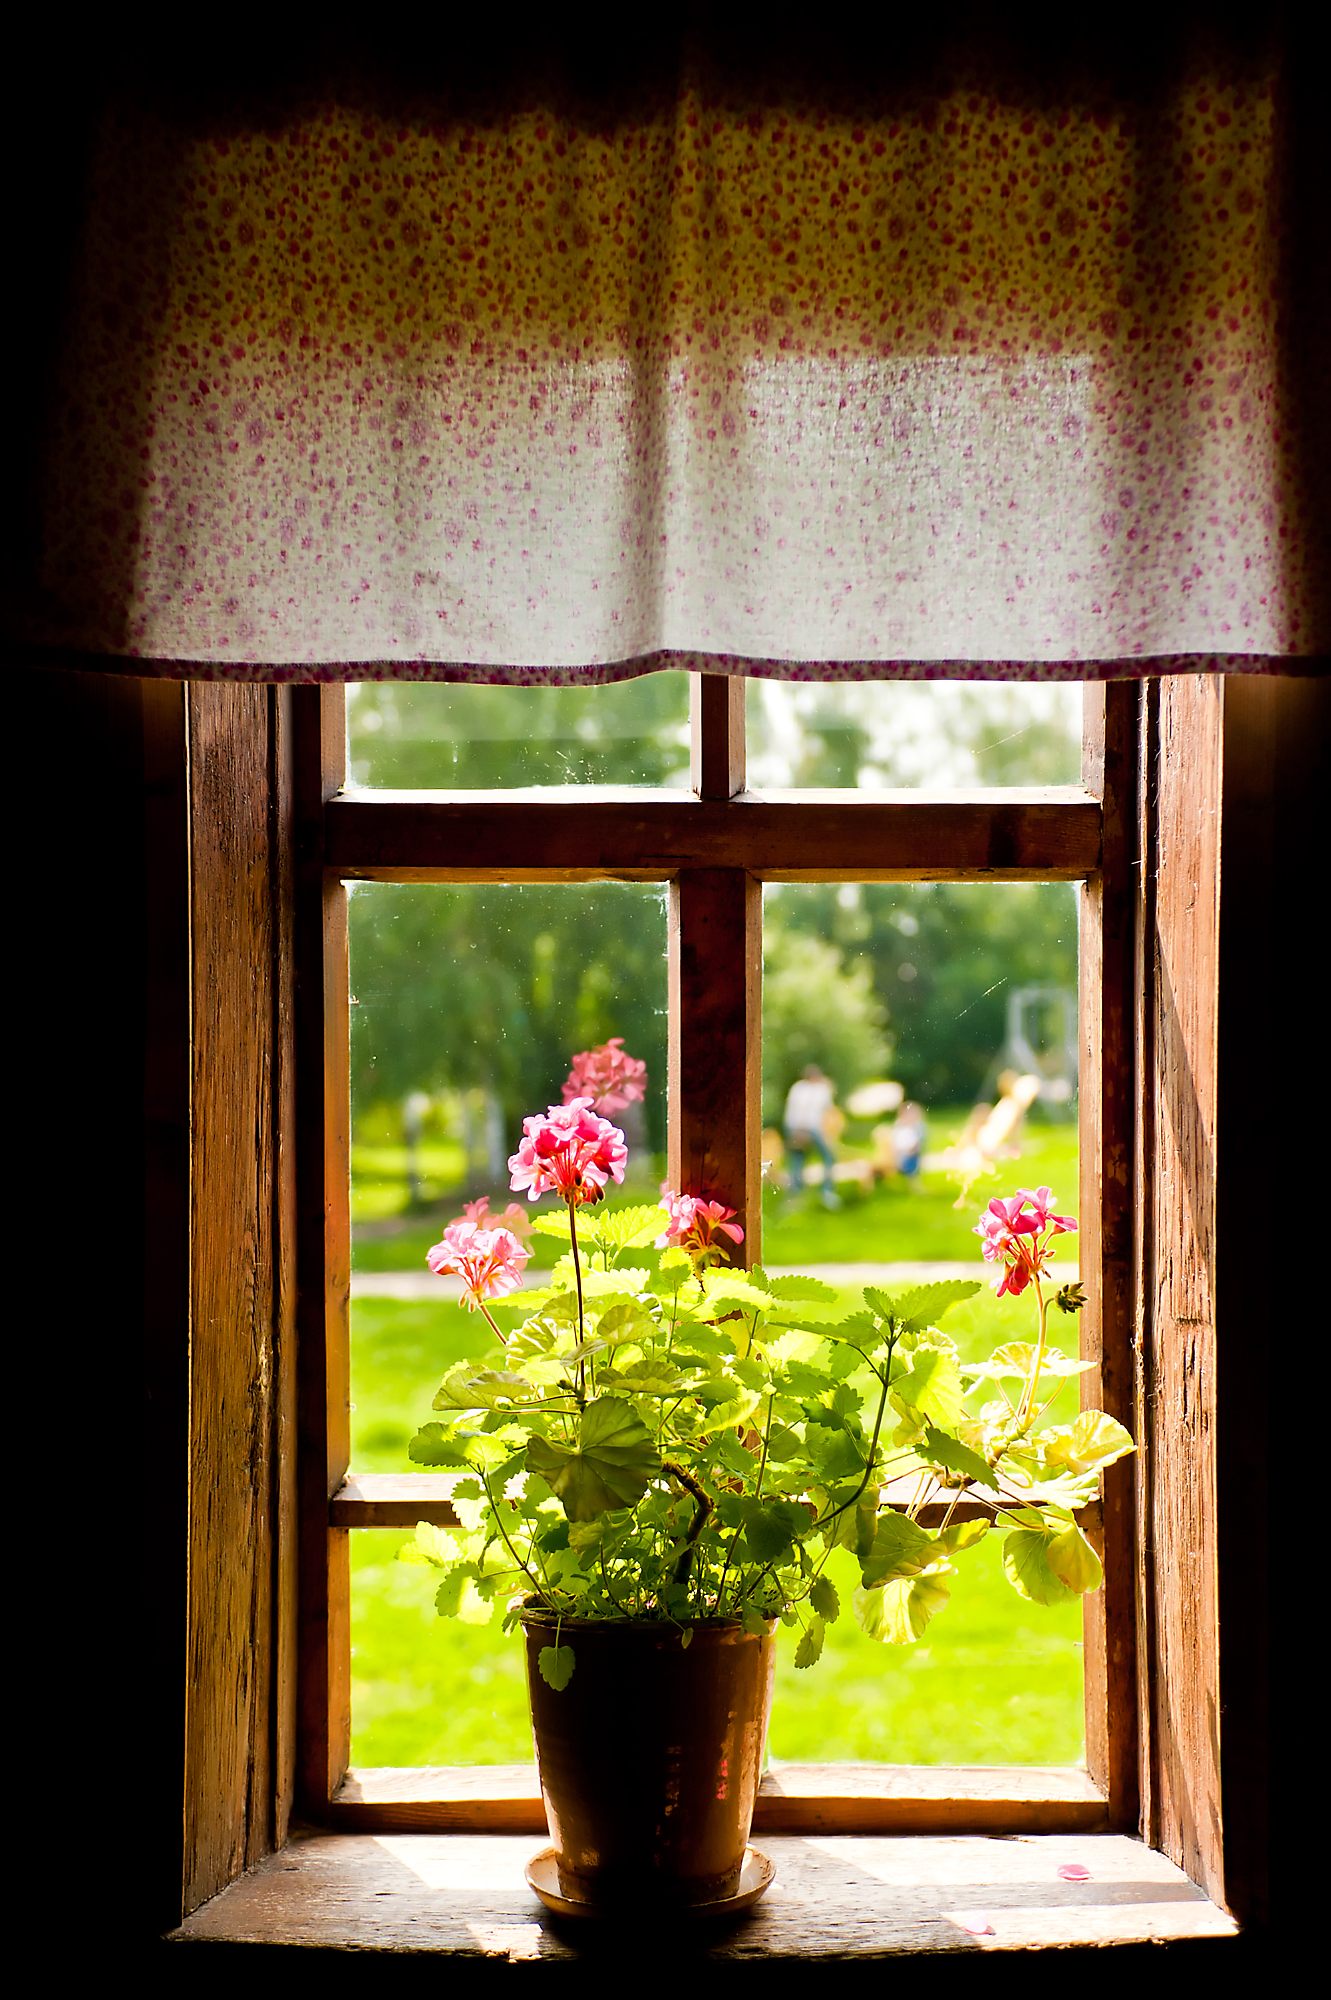 plants in windows